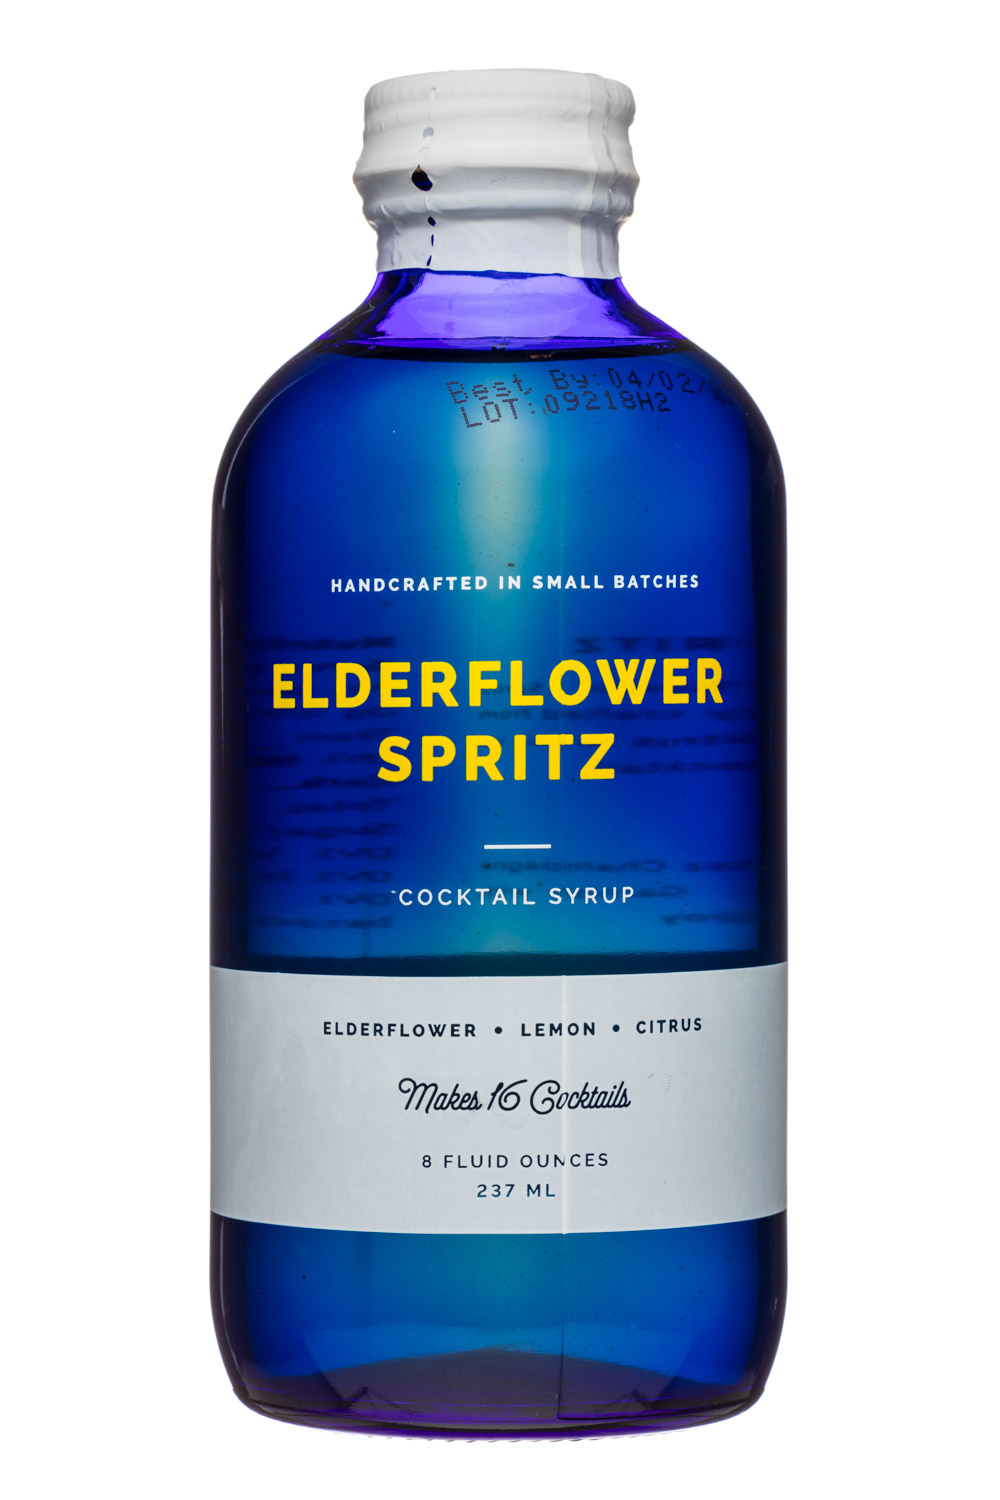 Elderflower Spiritz